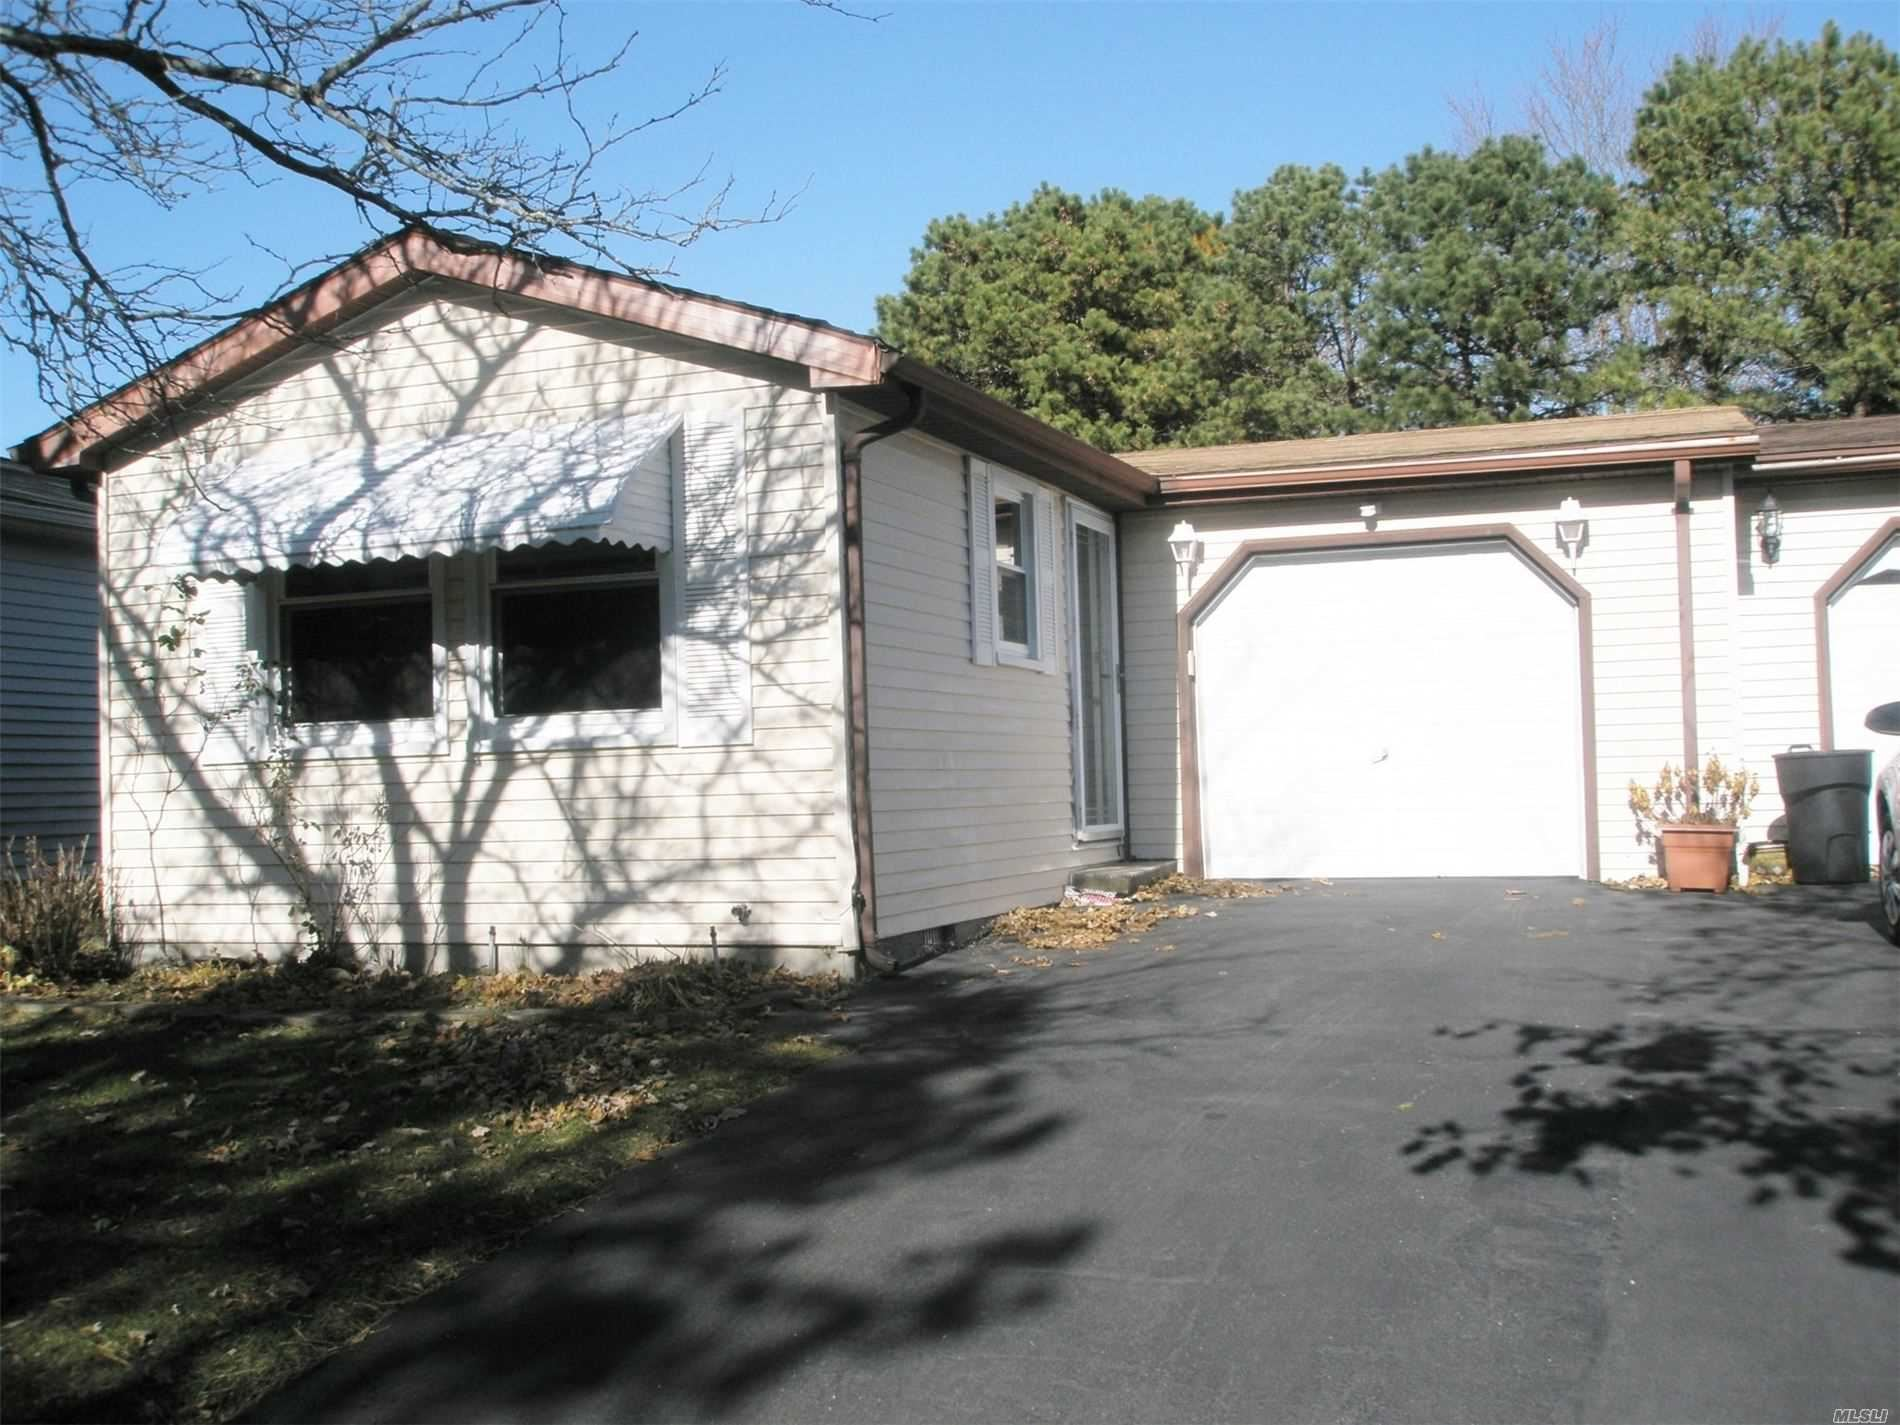 46 Greenwood Blvd, Manorville, NY 11949 - MLS#: 3182867